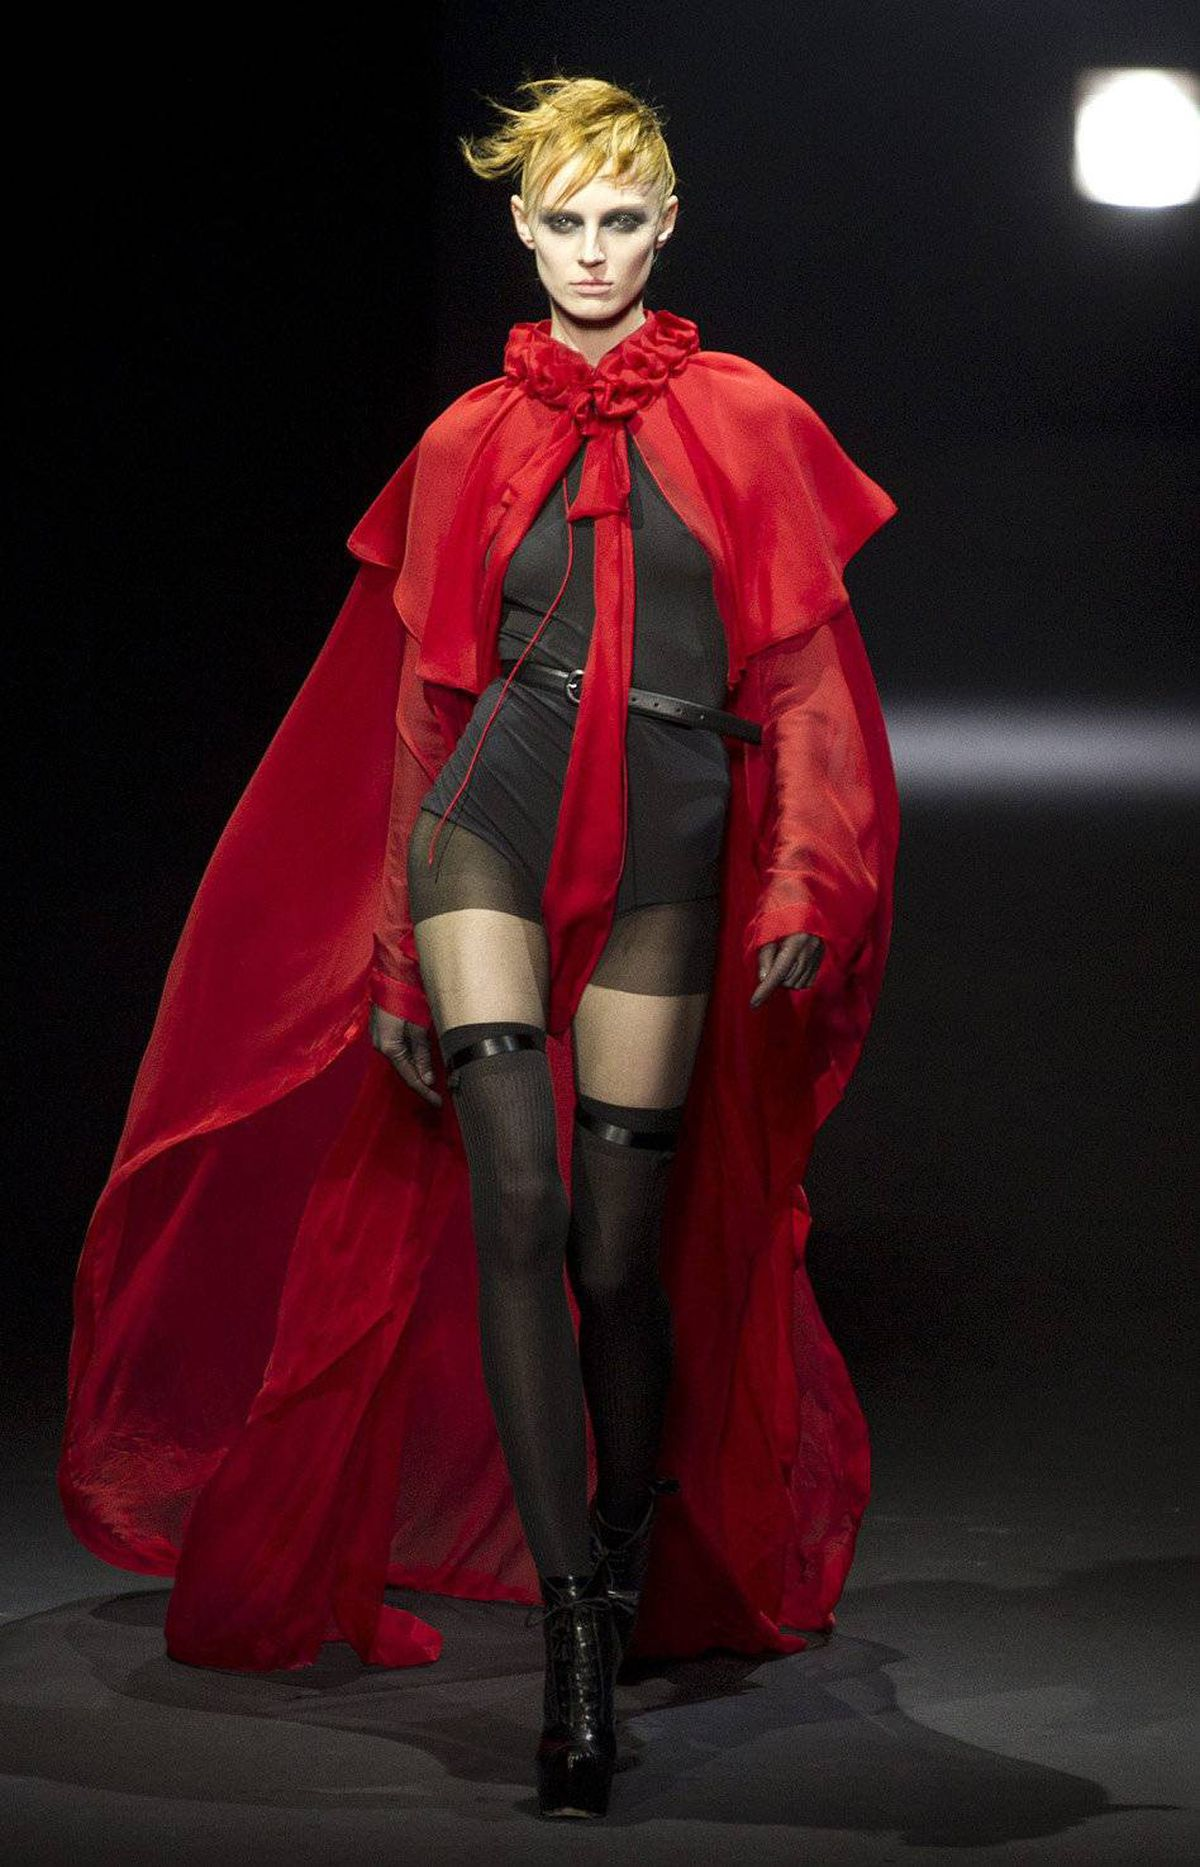 """And here is a boudoir version of Little Red Riding Hood. Oscar Wilde, a friend of Beardsley, famously said, """"One should either be a work of art, or wear a work of art."""" Alas, this collection was more overworked than wearable."""